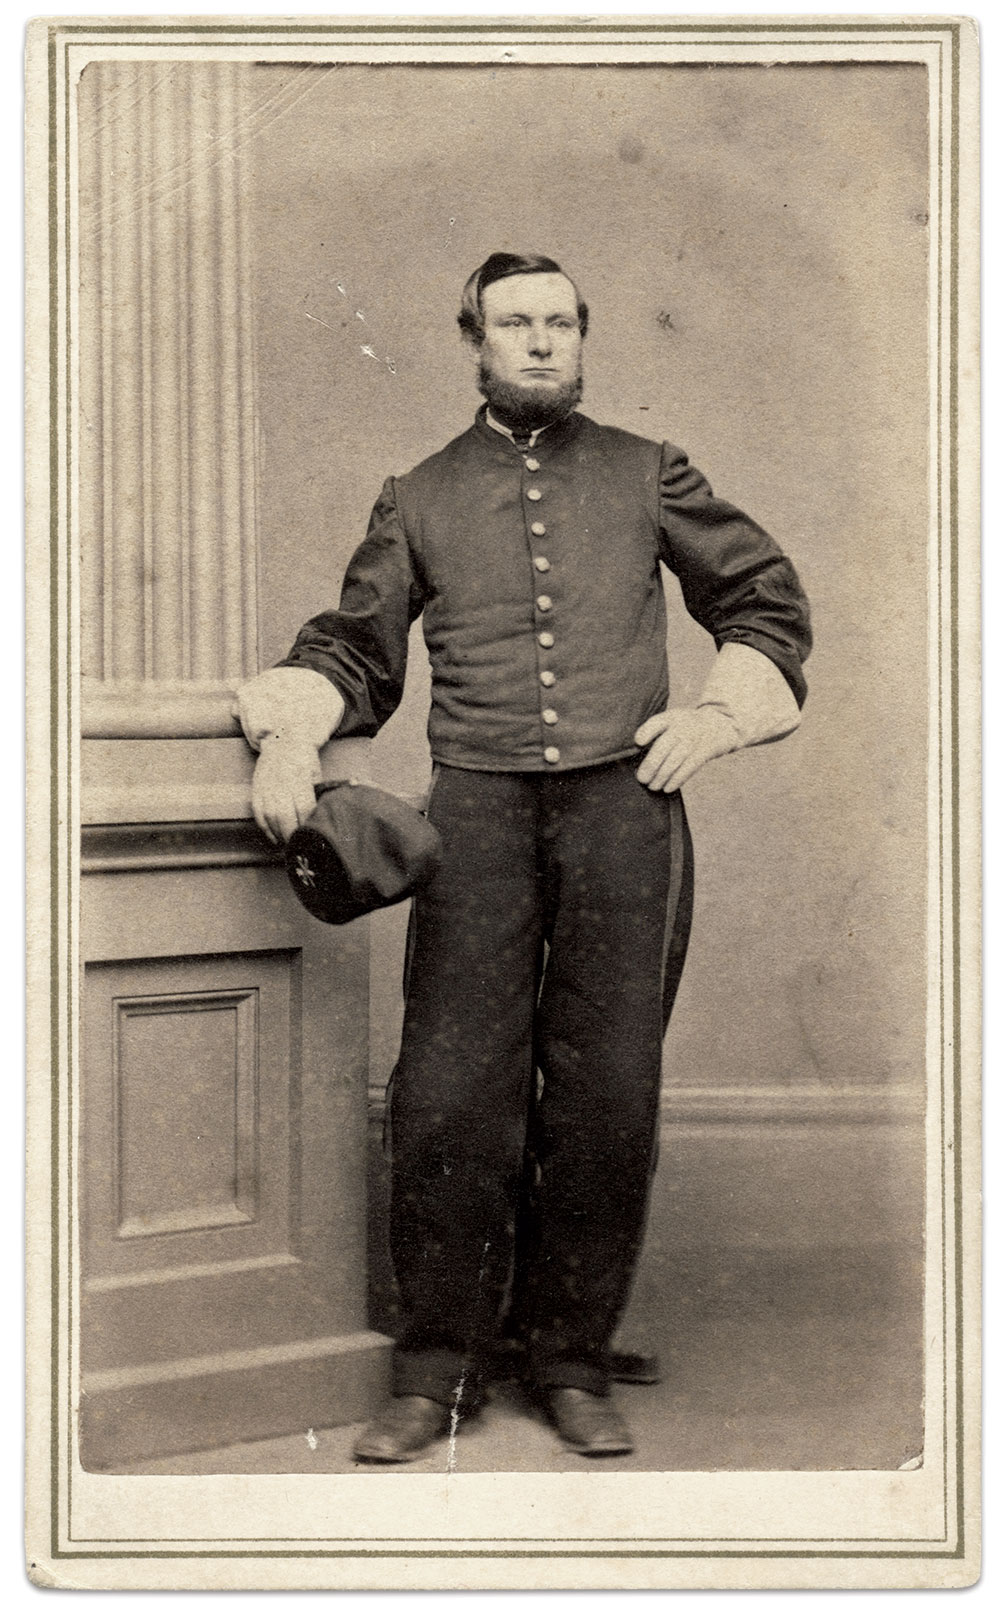 Aaron S. Lanfare of the 1st Connecticut Cavalry as he looked in March 1864, about a year before he captured the Florida flag. Carte de visite by Moulthrop of New Haven, Conn. Rick Carlile Collection.